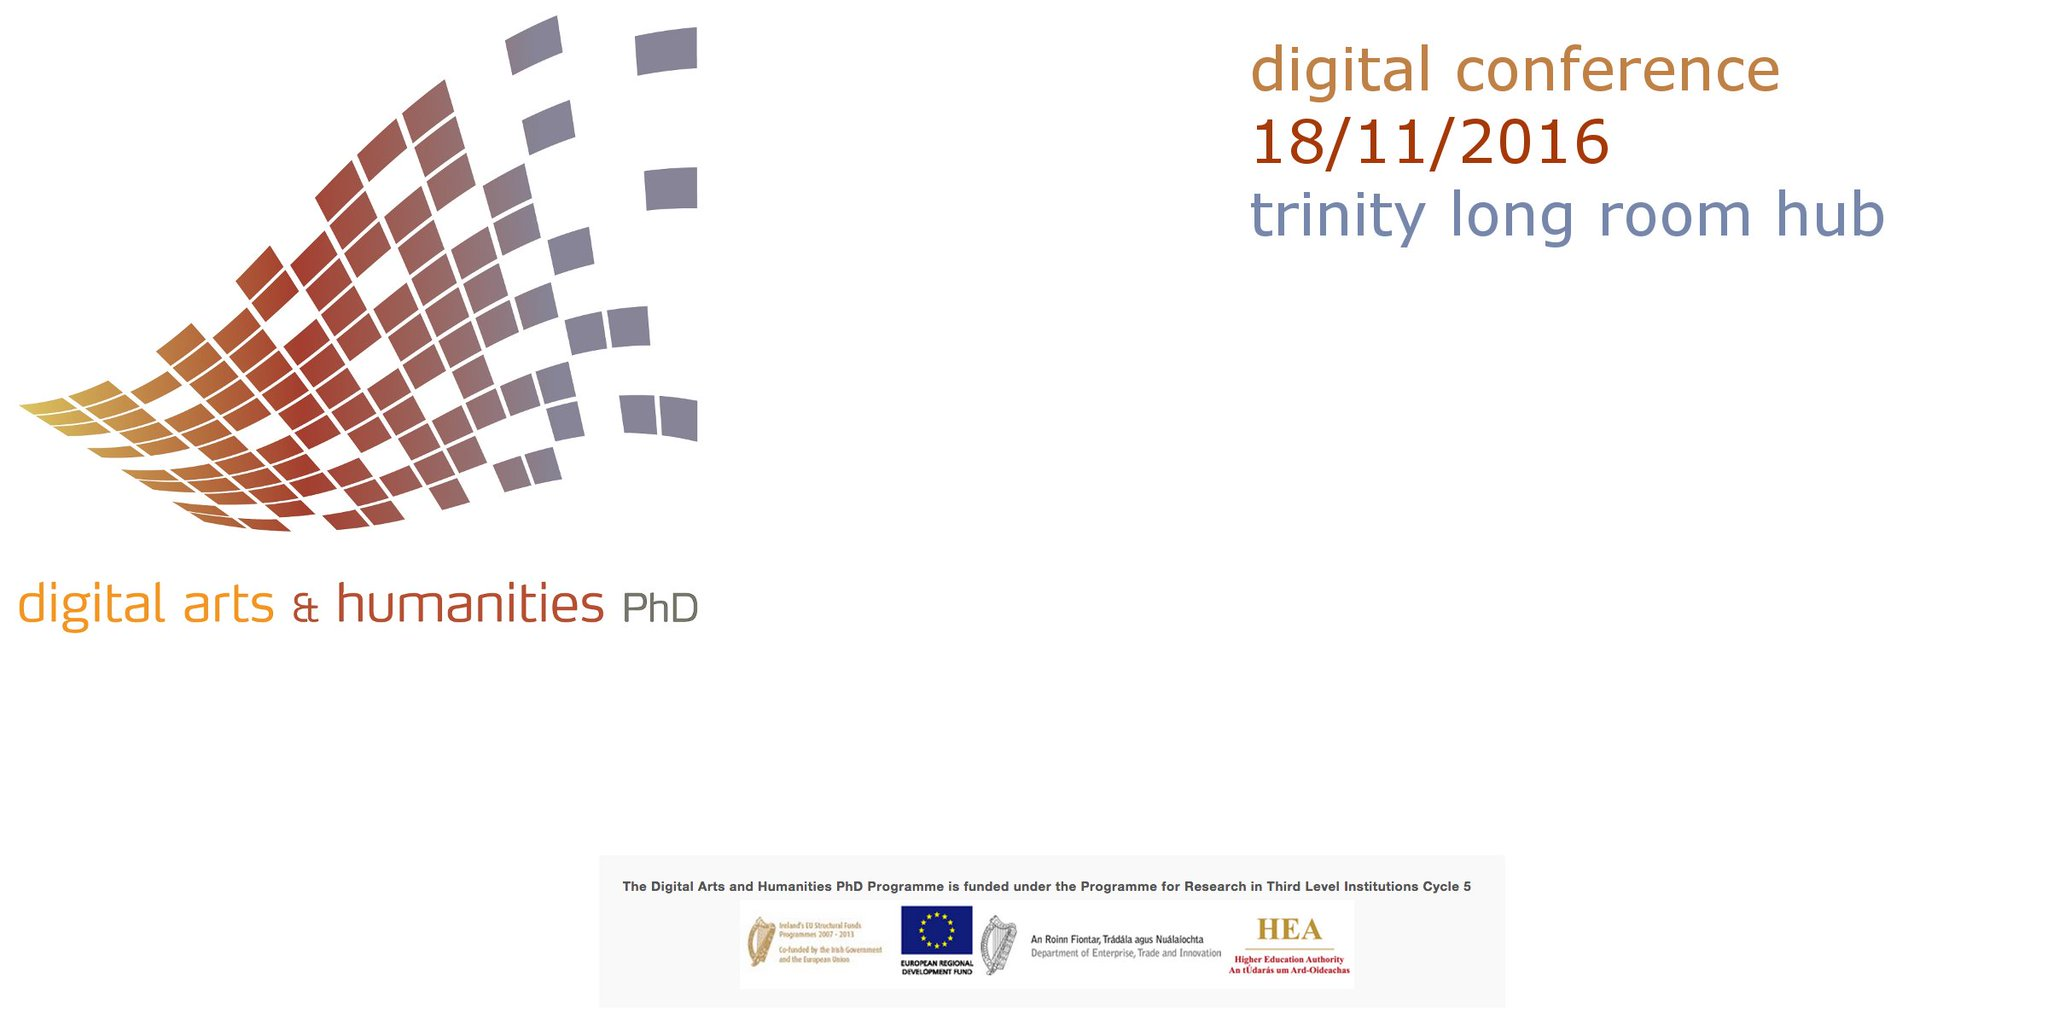 Today is the Digital Arts & Humanities (DAH) PhD Digital Conference in @TLRHub. Follow the day's events at #dahphdie https://t.co/SdeLIKgheW https://t.co/6xygEWGRZe